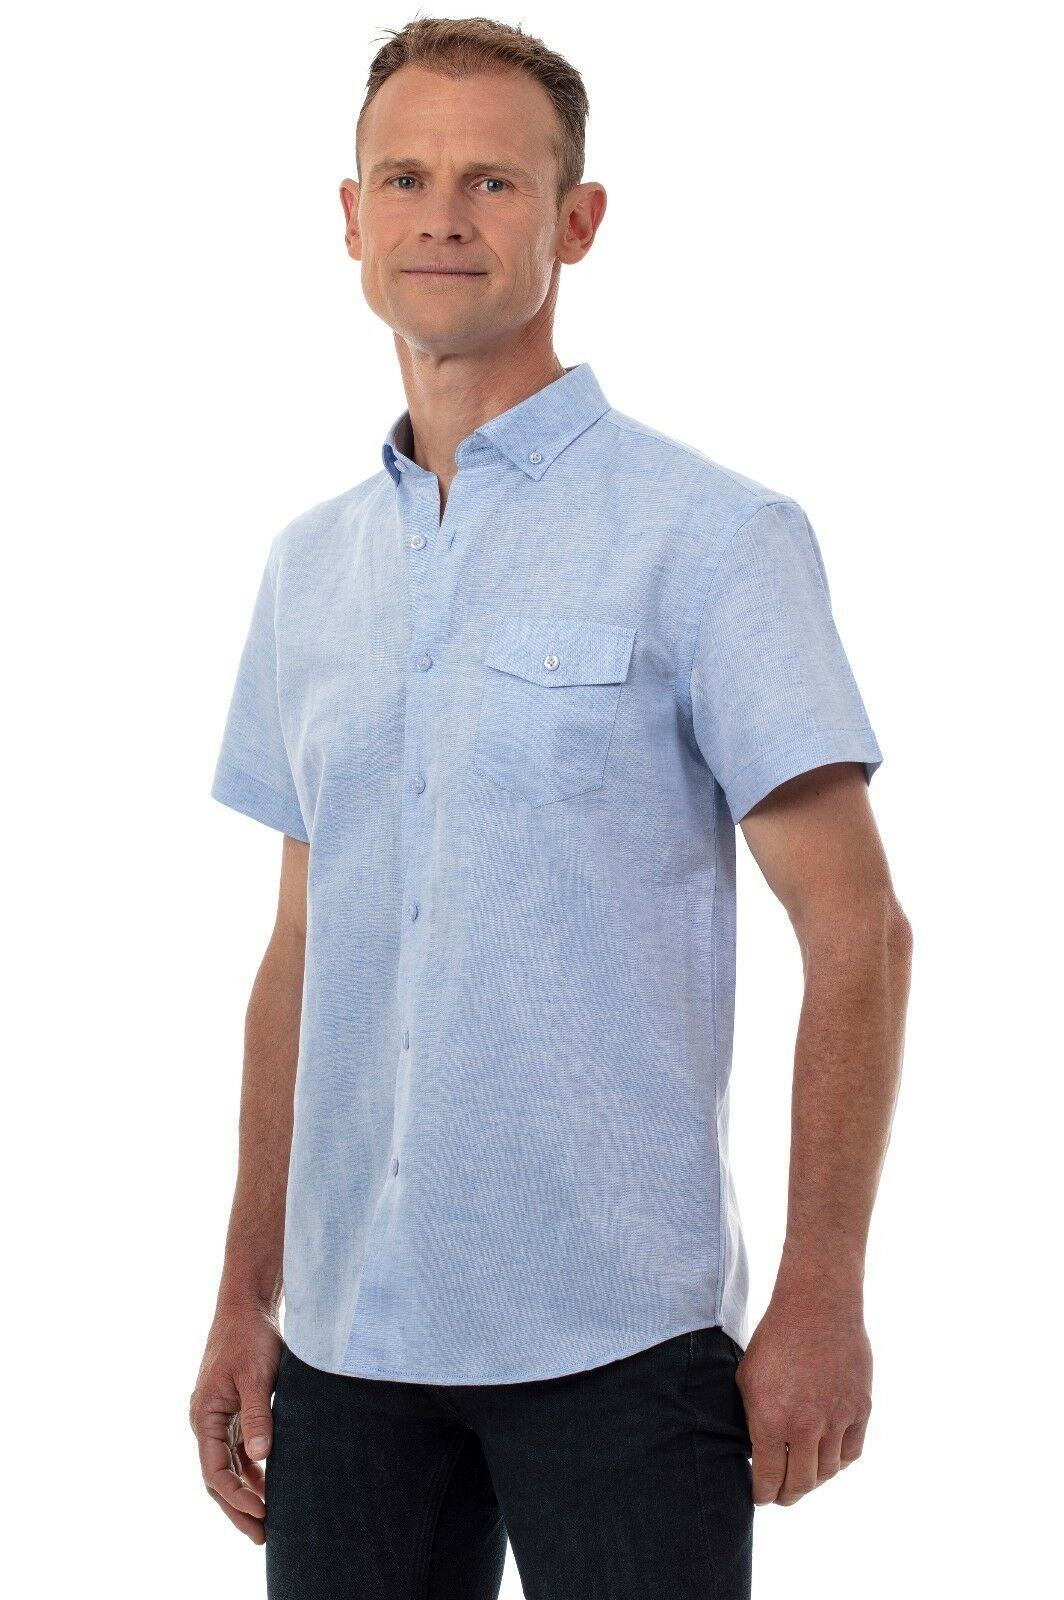 UGHOLIN Men's Linen and Cotton Button-Down Adjusted Fit Short Sleeve Shirt, bluee